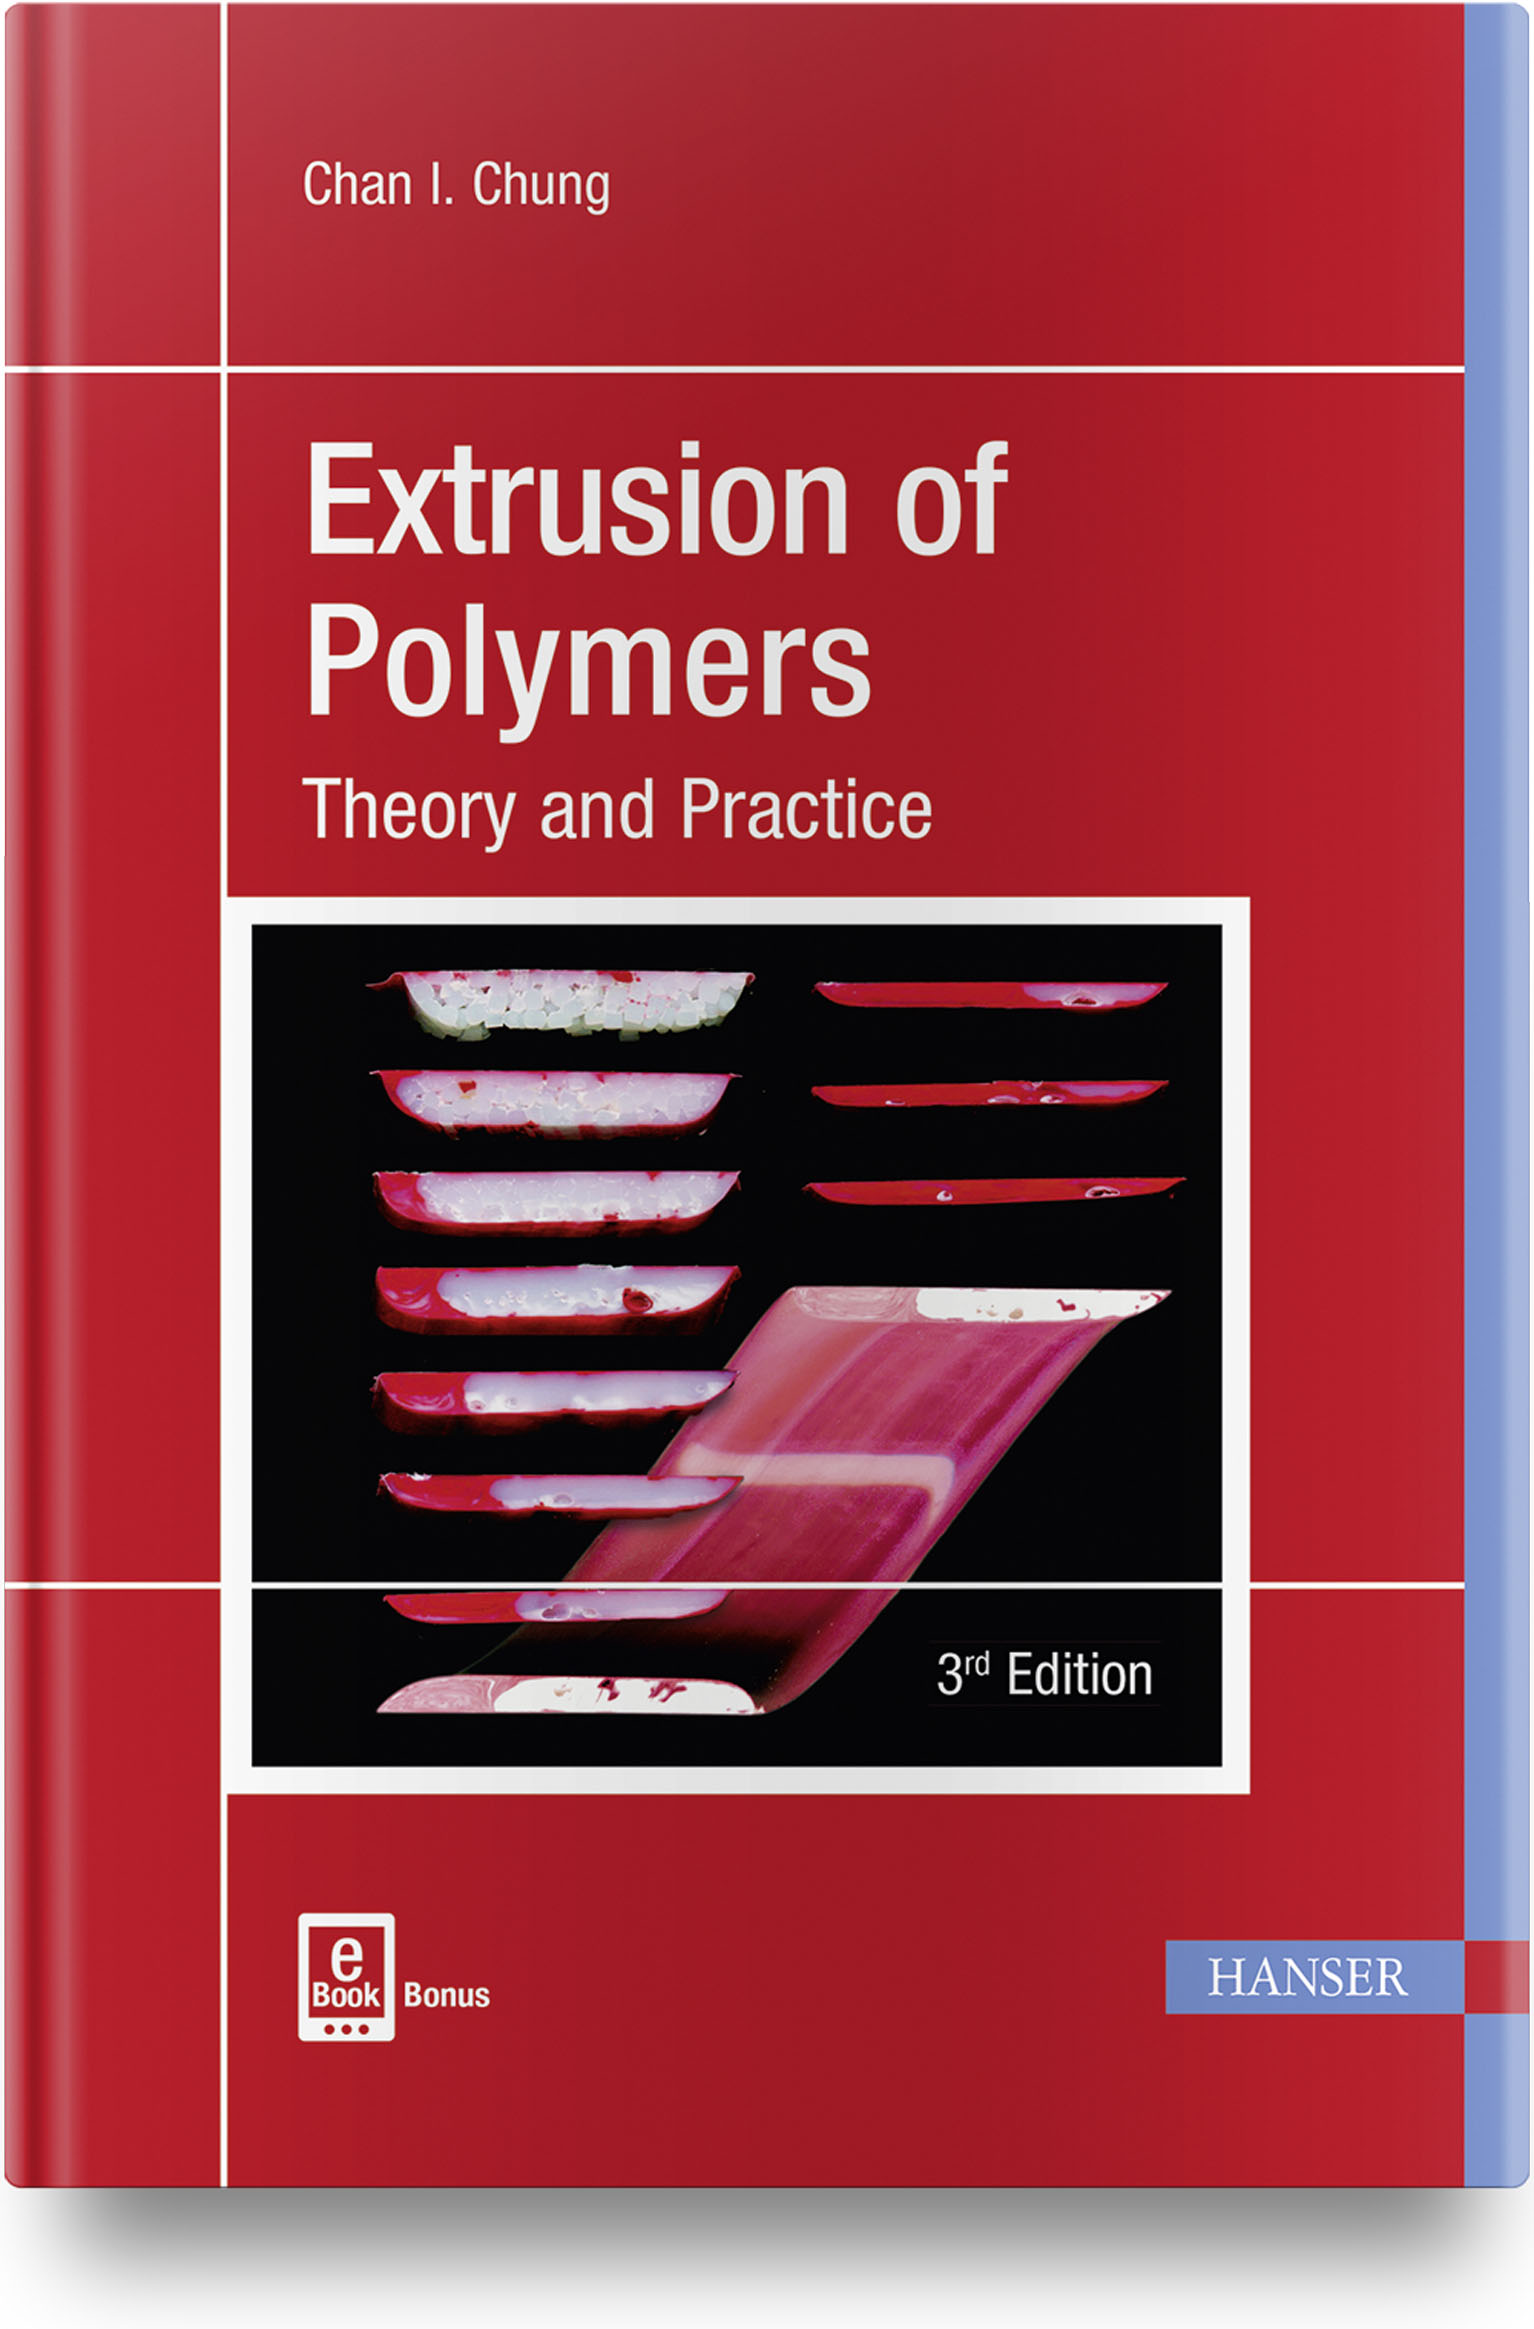 Chung, Extrusion of Polymers, 978-1-56990-609-5